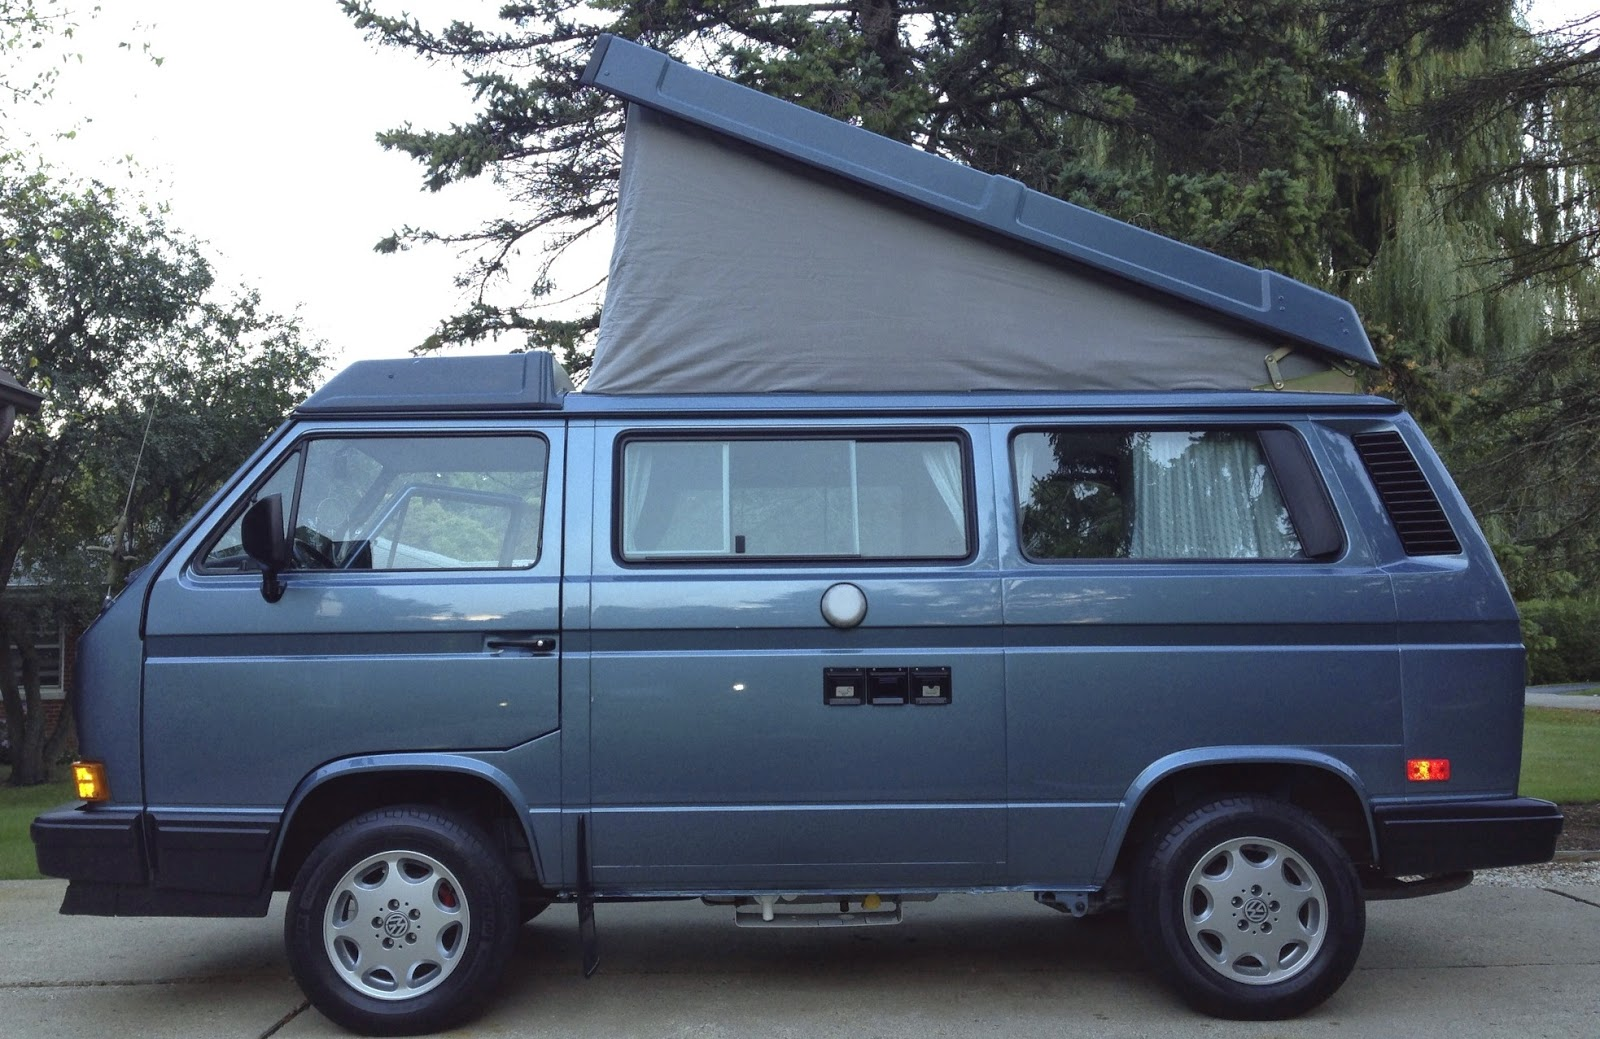 East Coast Vw >> The Happy Wanderer: Our 1989 Volkswagen Vanagon